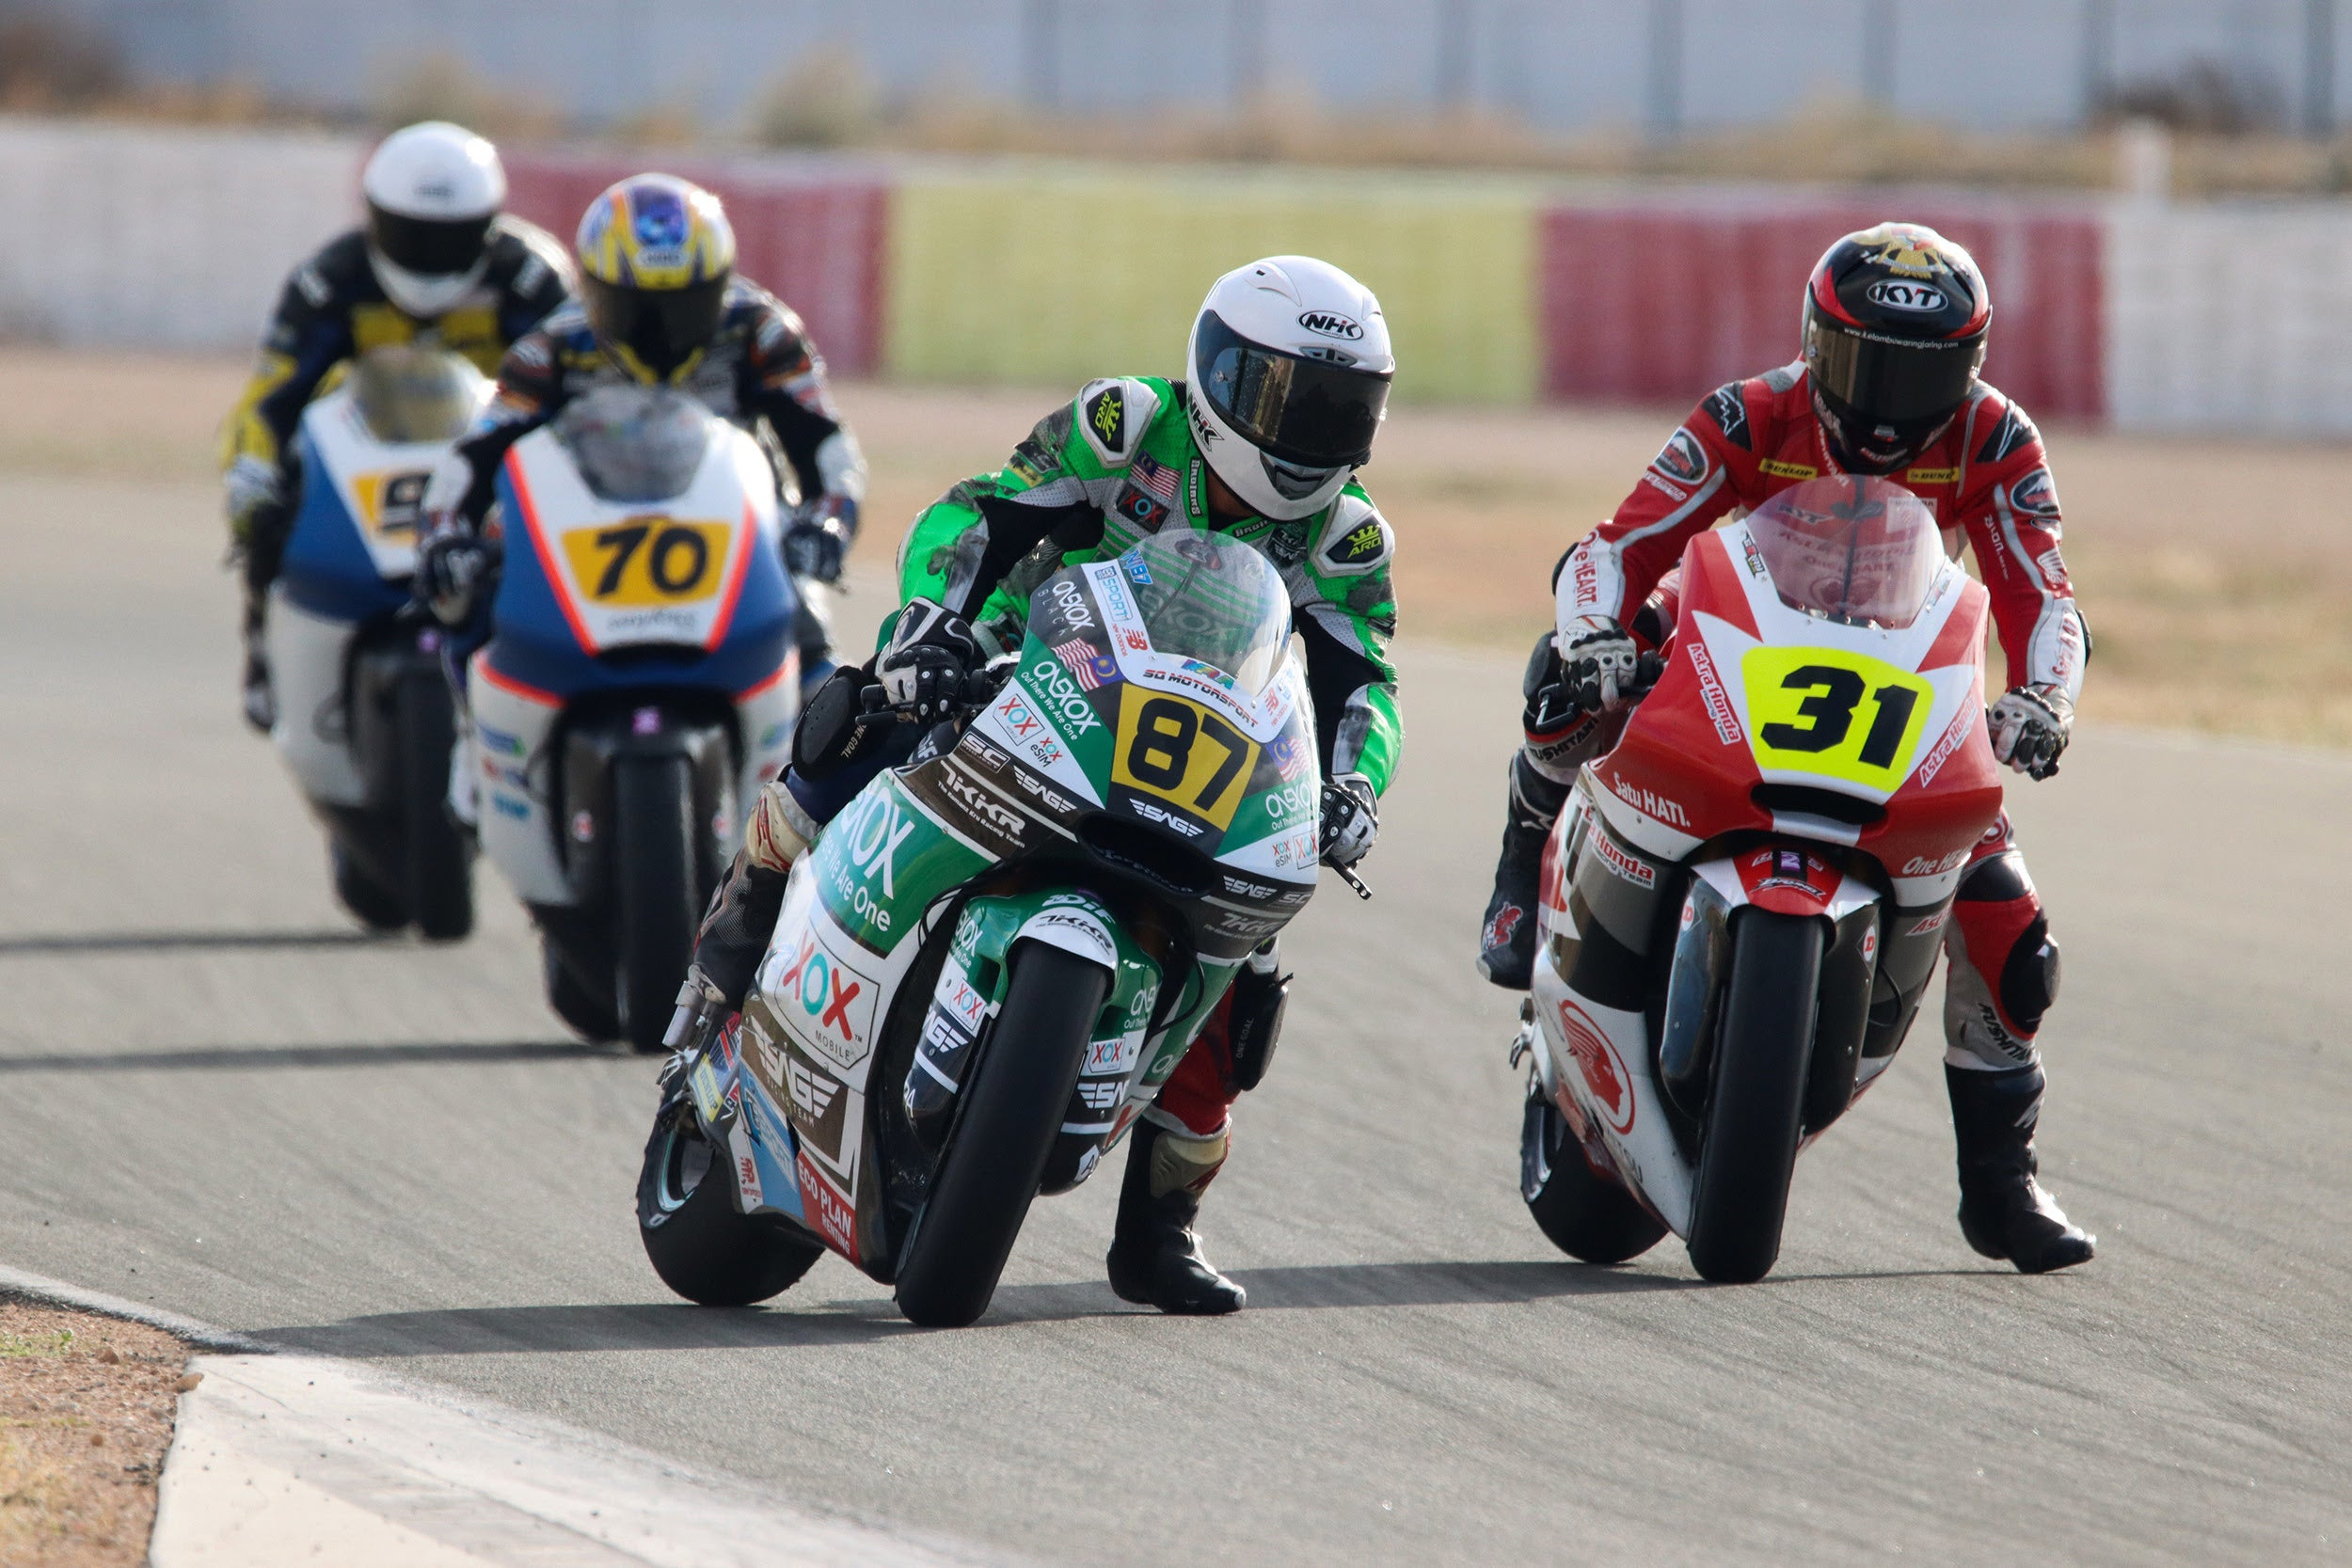 Valencia holds the last round of the FIM CEV Repsol for the ONEXOX TKKR SAG TEAM